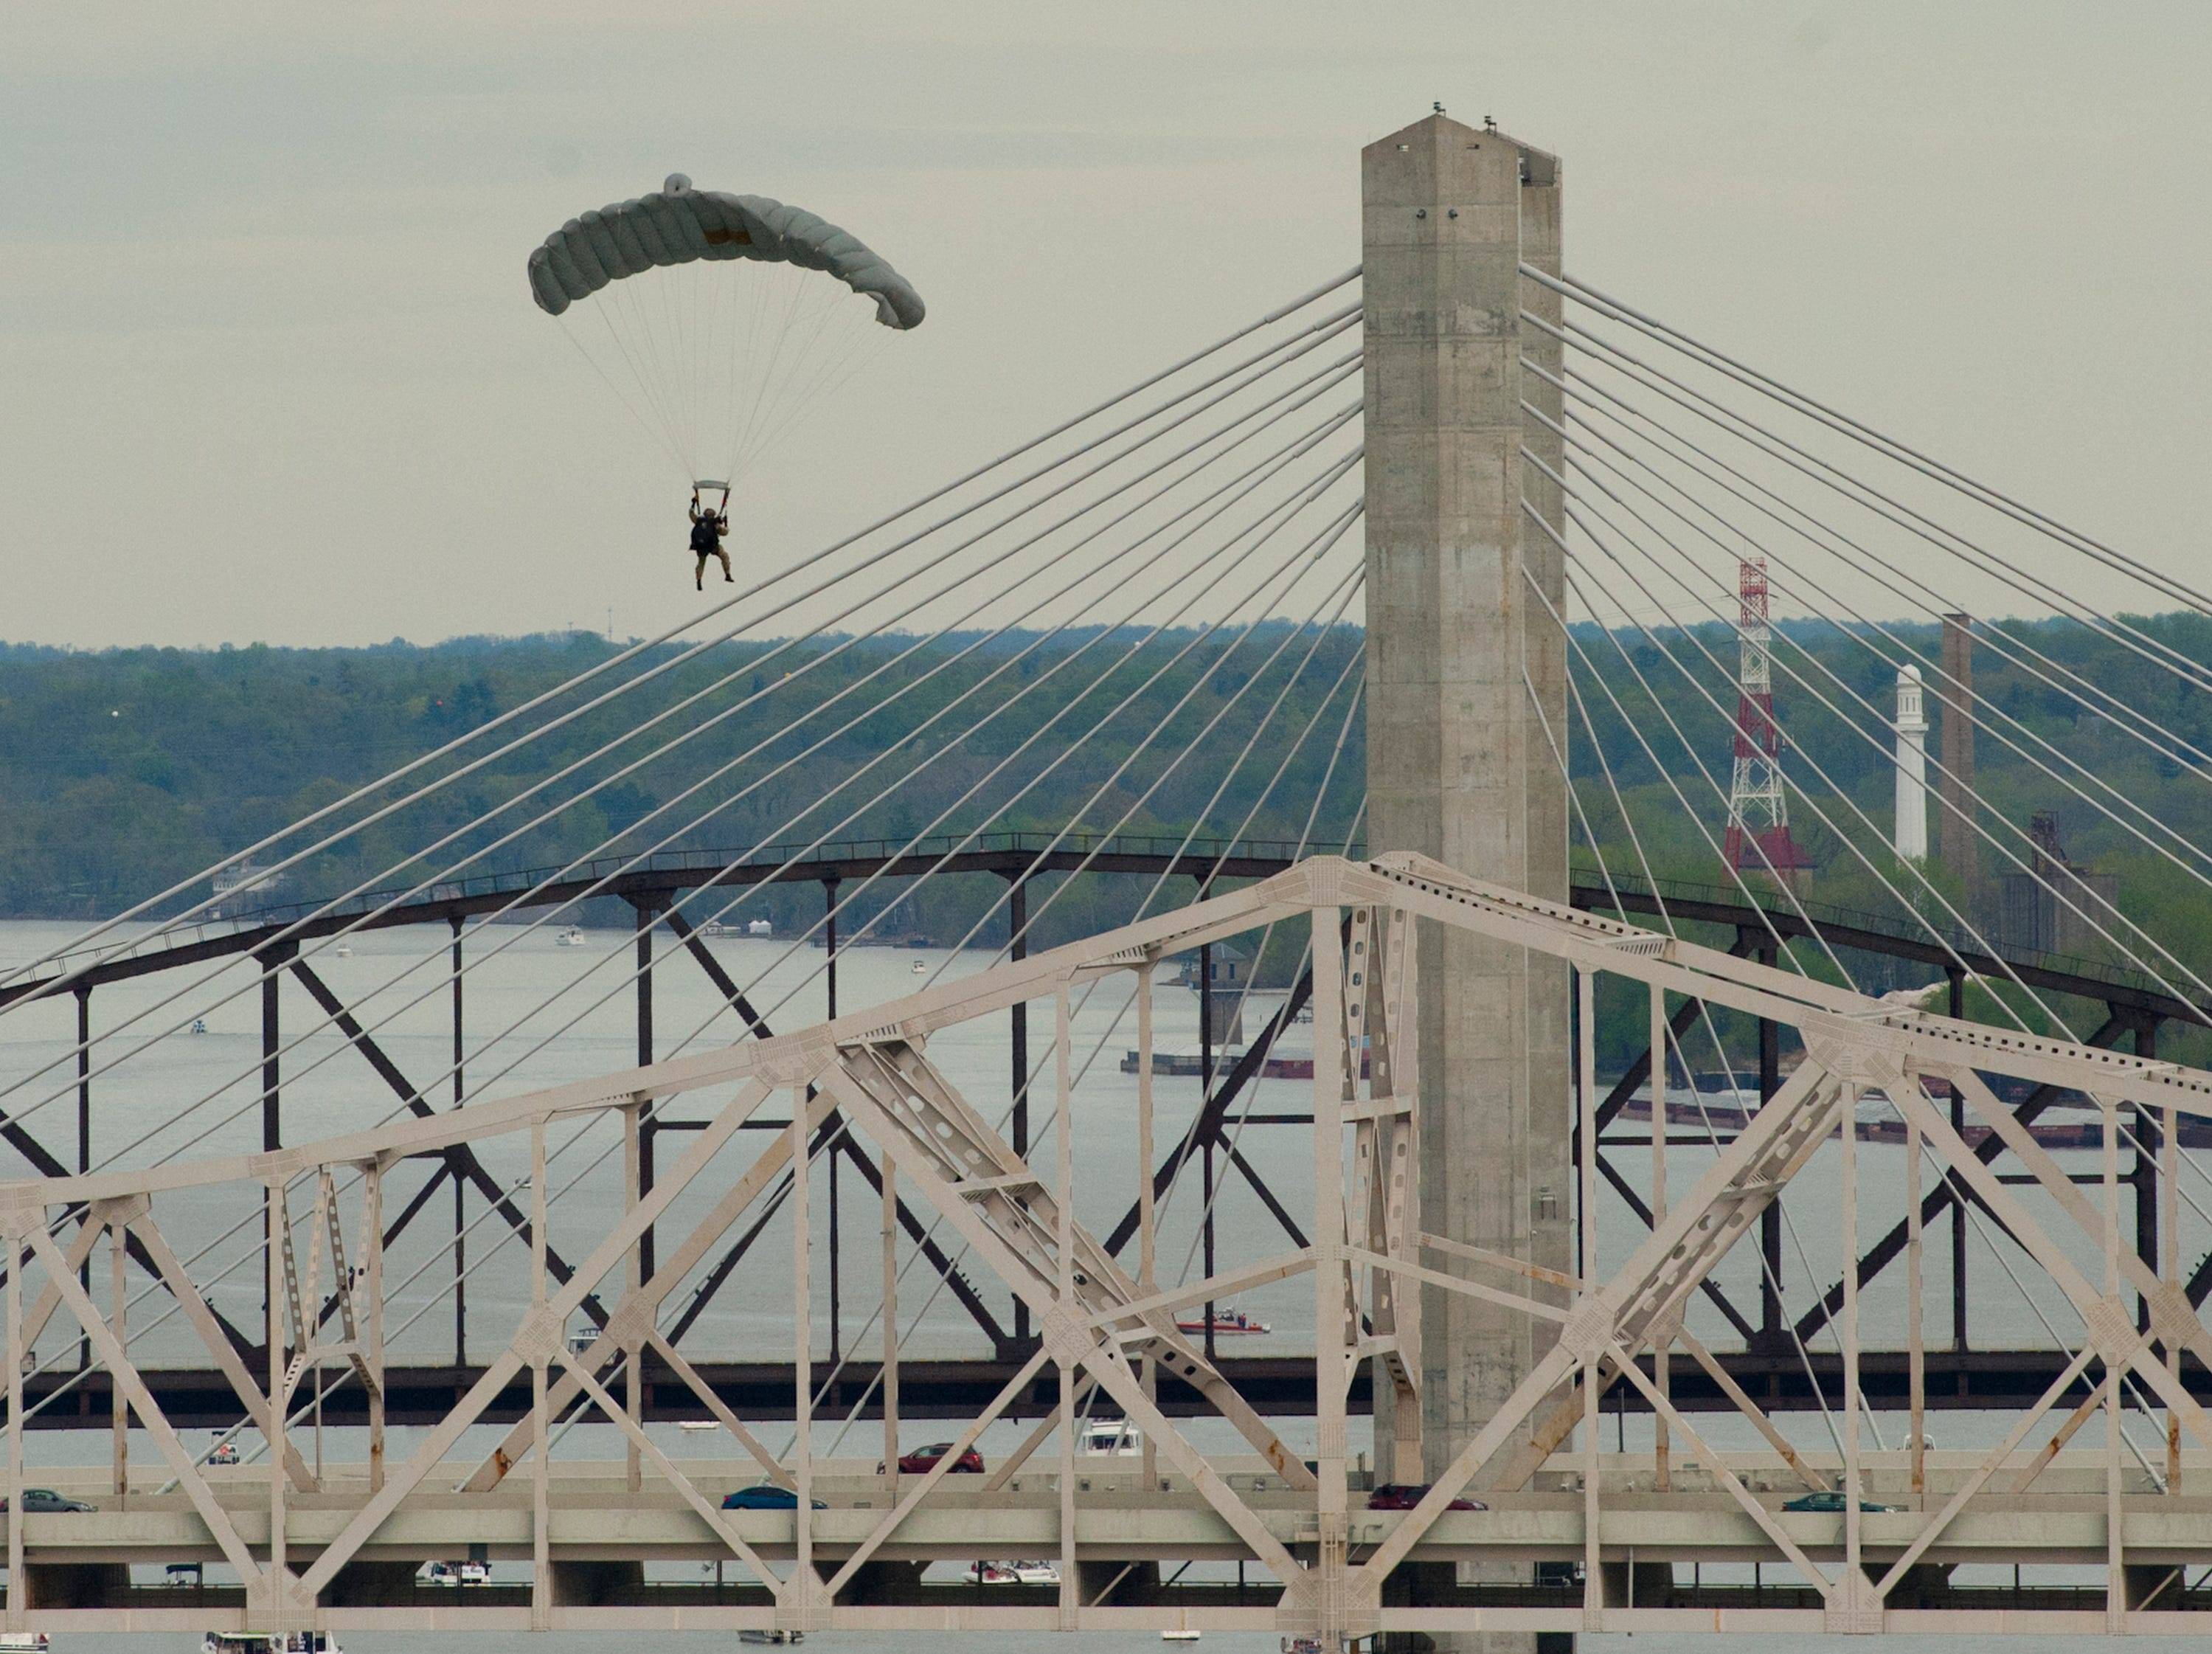 Kentucky Air National Guard's 123rd Airlift Wing flies a C-130 and Special tactics High Altitude Low Opening (HALO) air dropped parachutists at the 2019 Thunder Over Louisville Air Show.13 April 2019